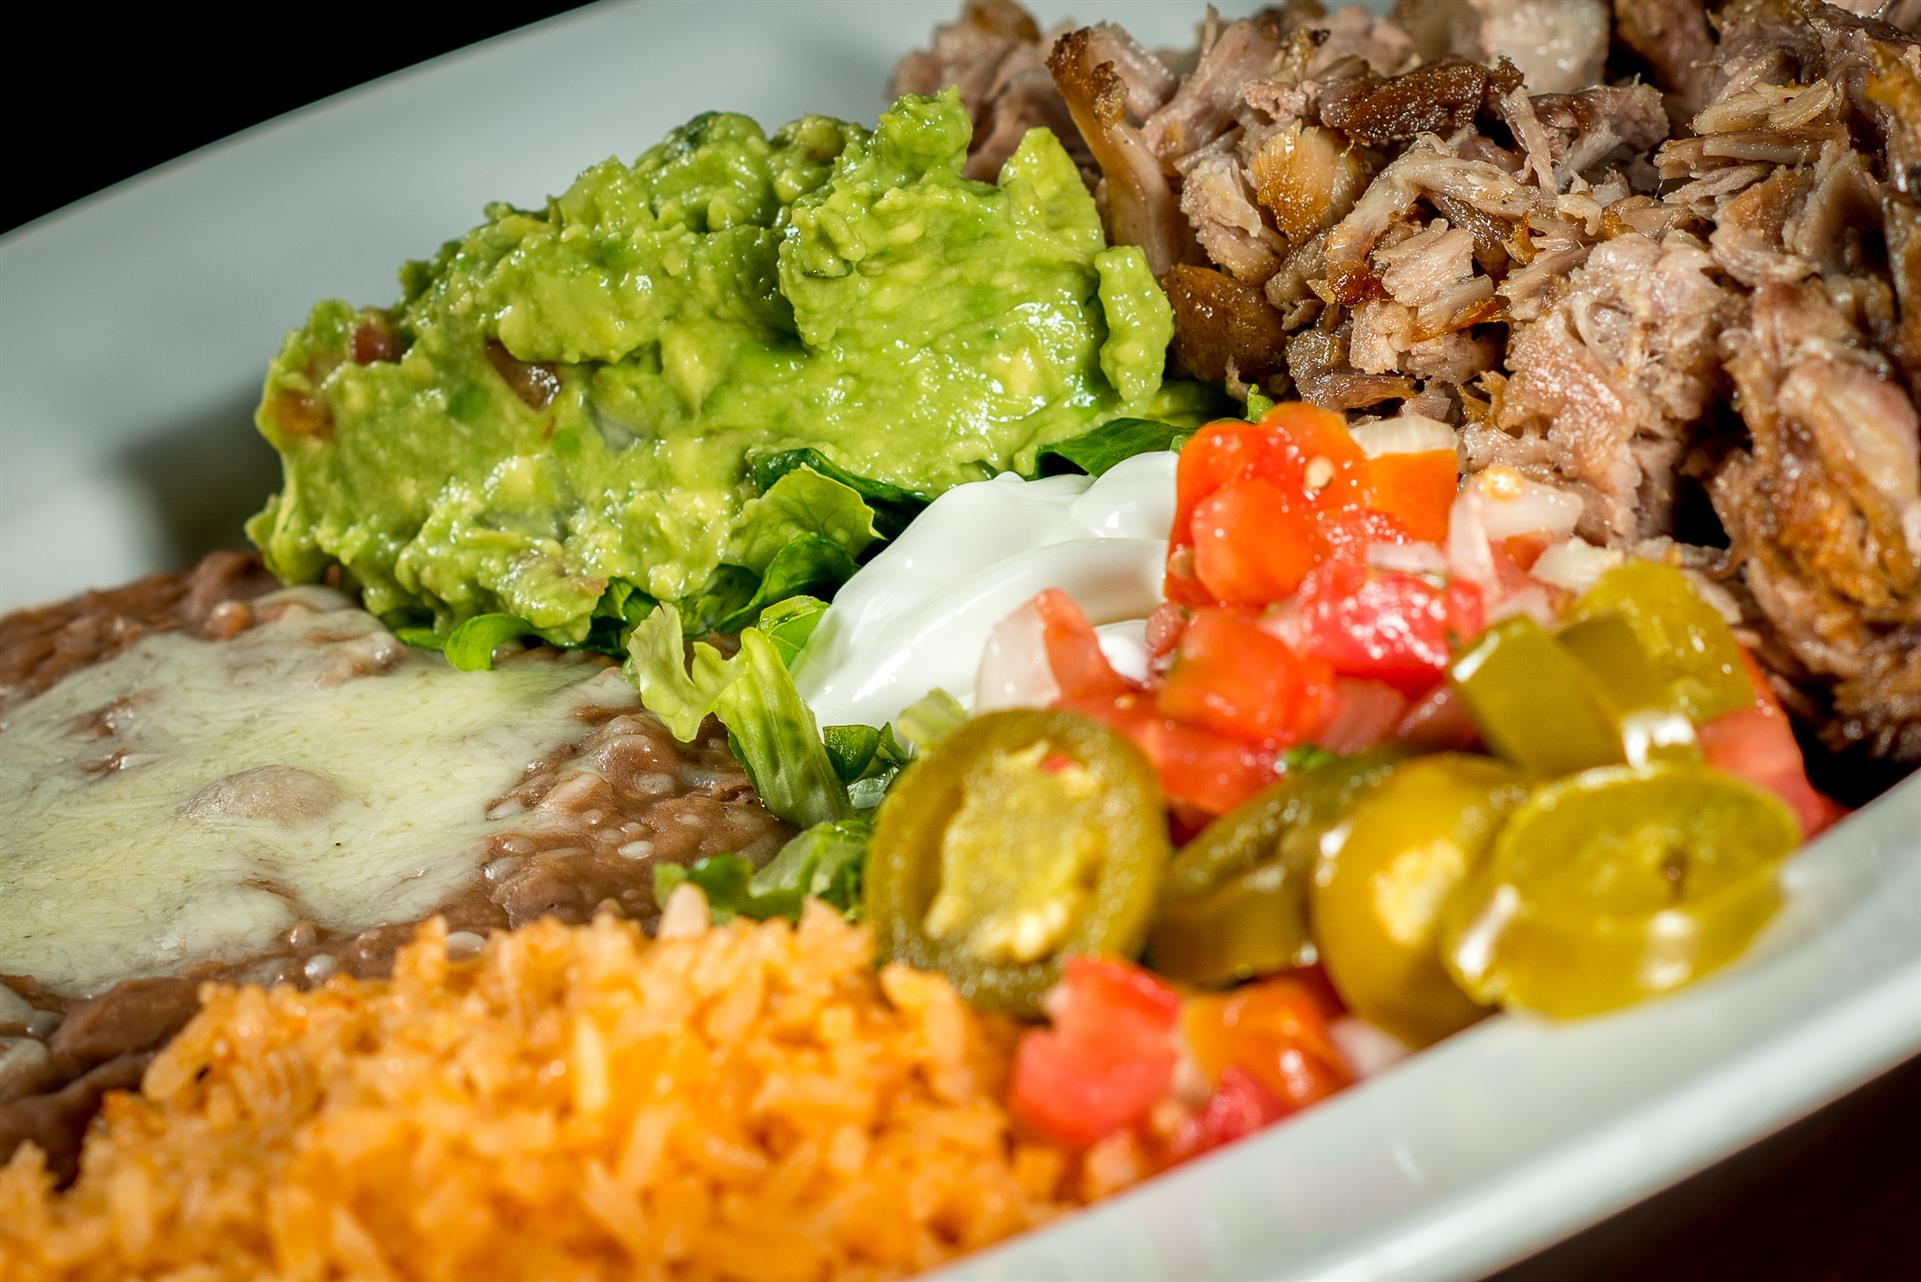 Carnitas Platillo: Traditional Mexican style deep-fried pork. Served with guacamole and sour cream.